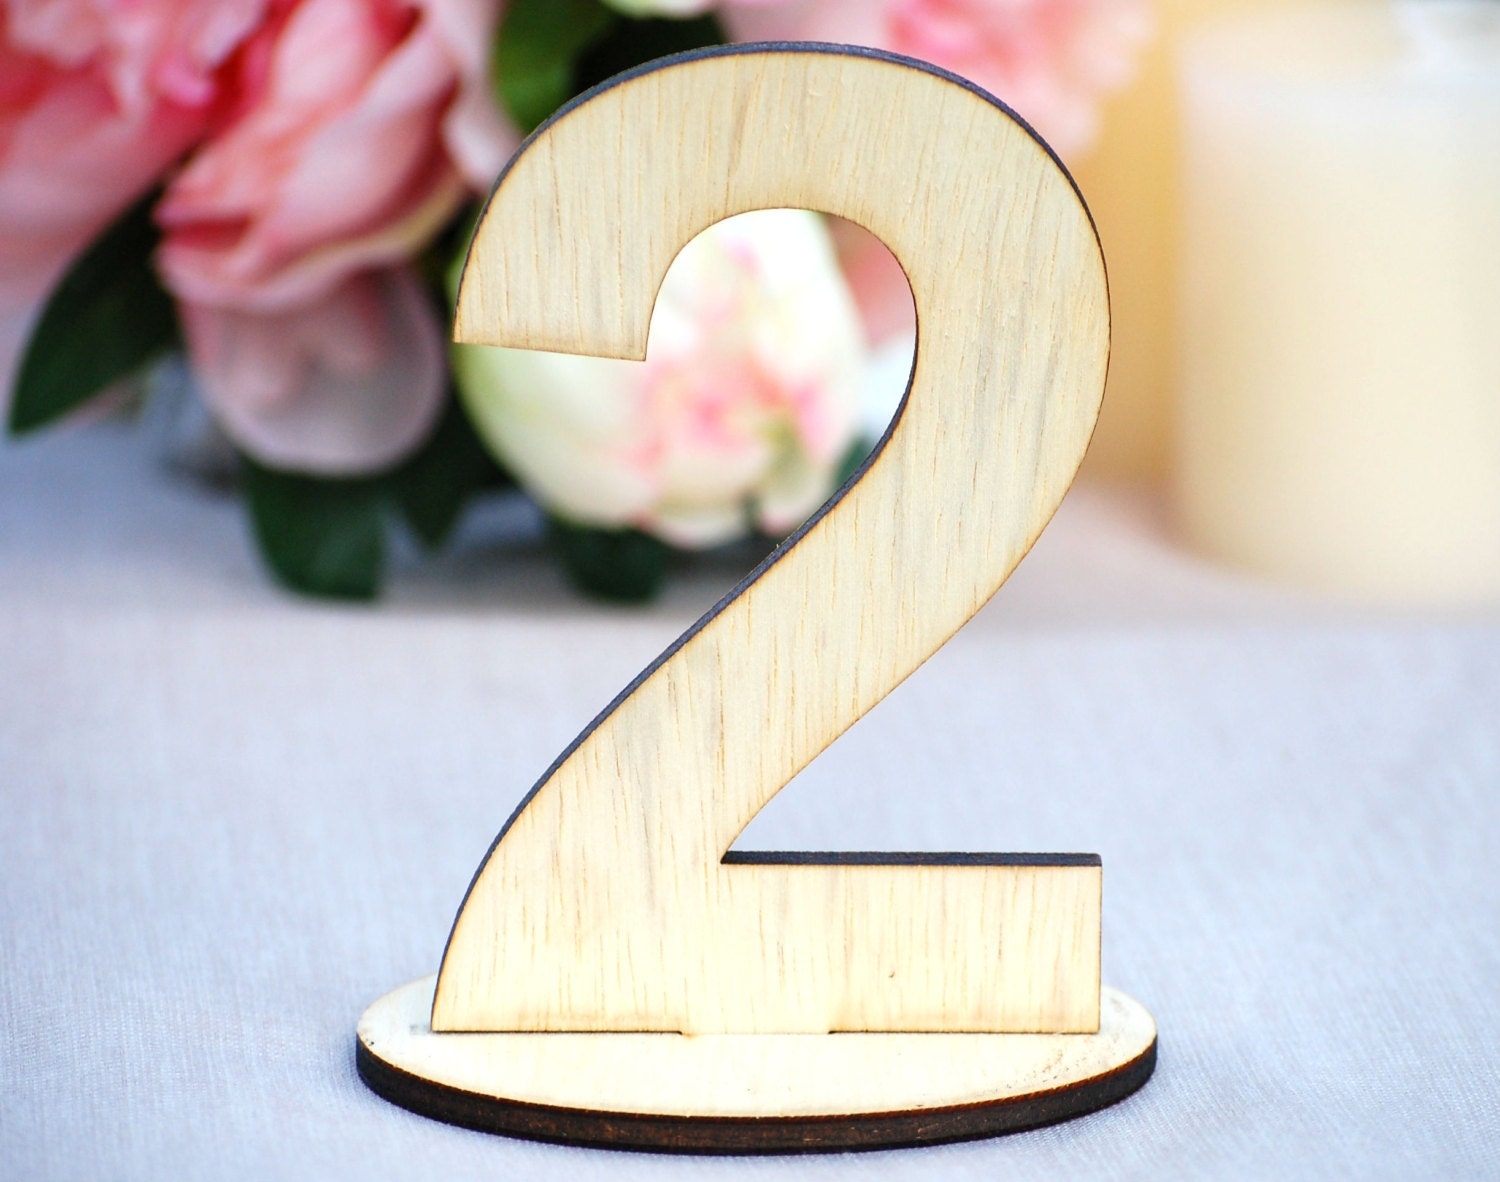 Superb img of DIY Wedding Reception Table Number Wooden by UrbanFarmhouseTampa with #A02B38 color and 1500x1182 pixels